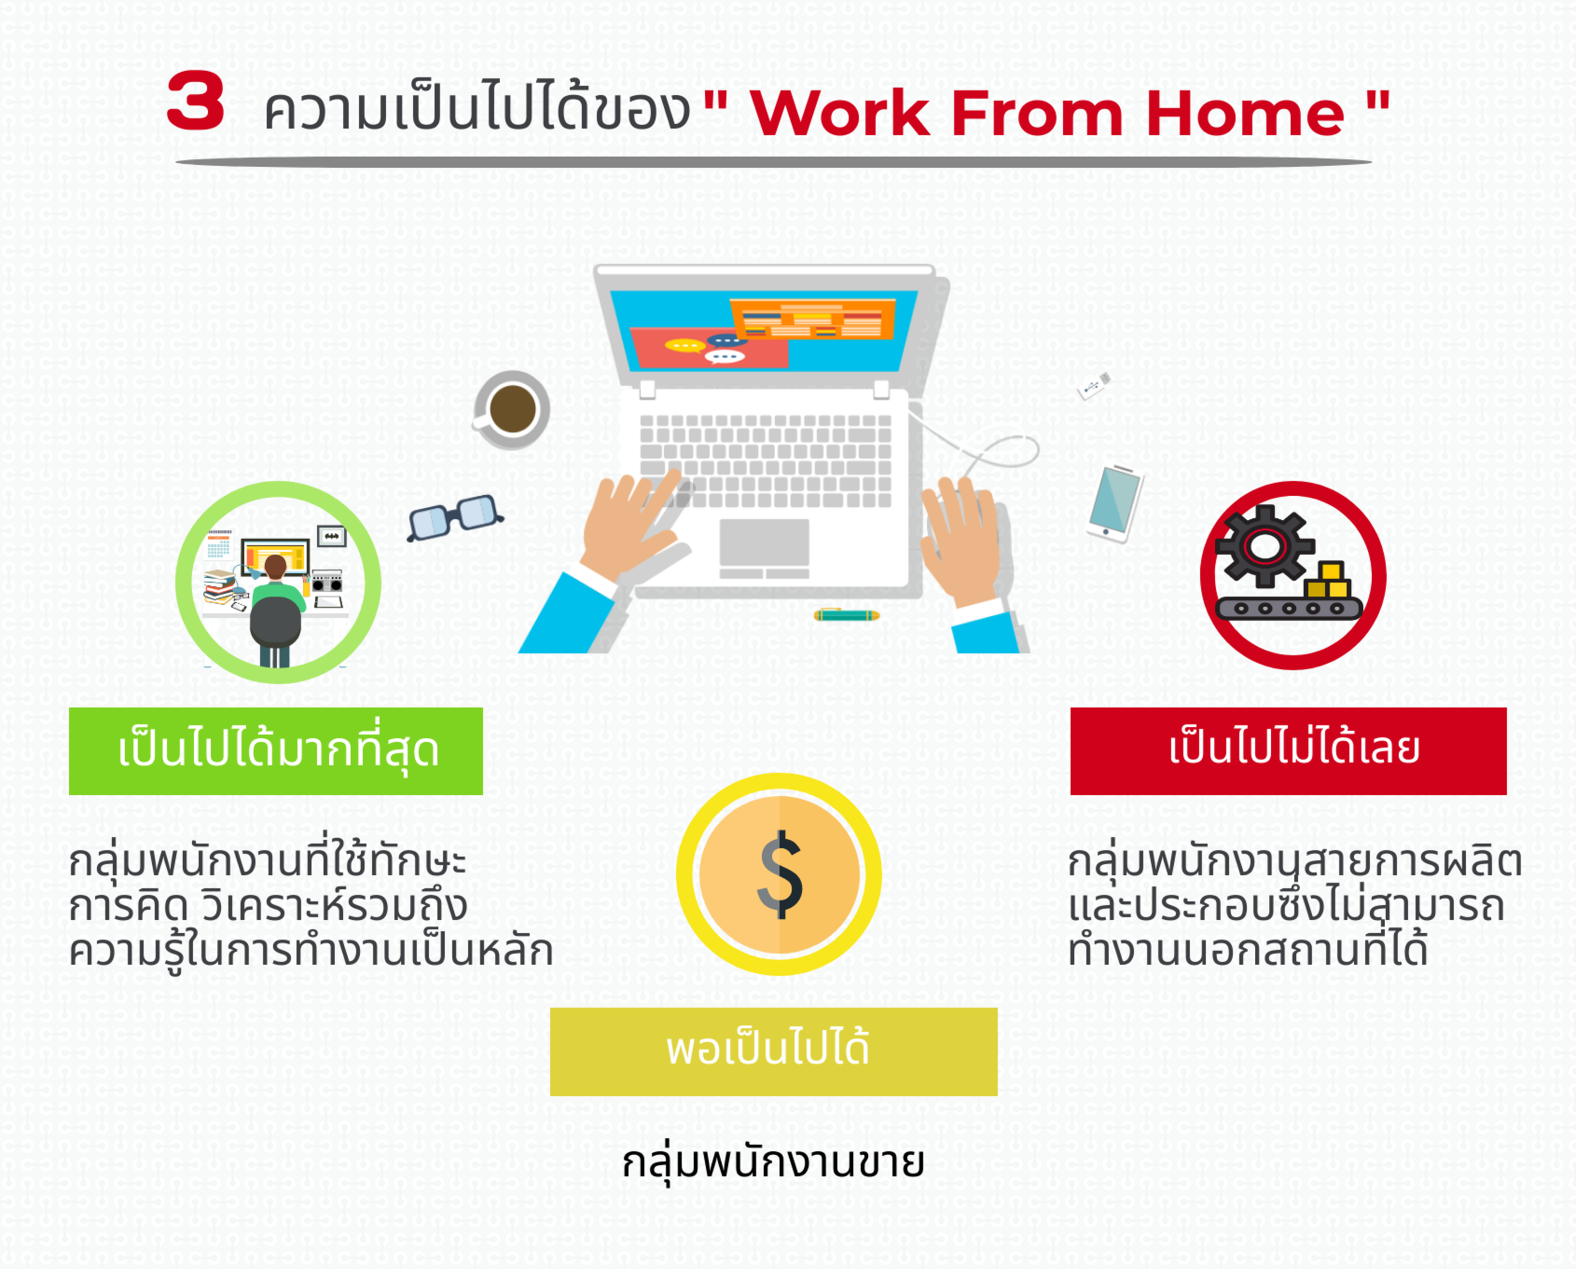 Work From Home possible covid-19